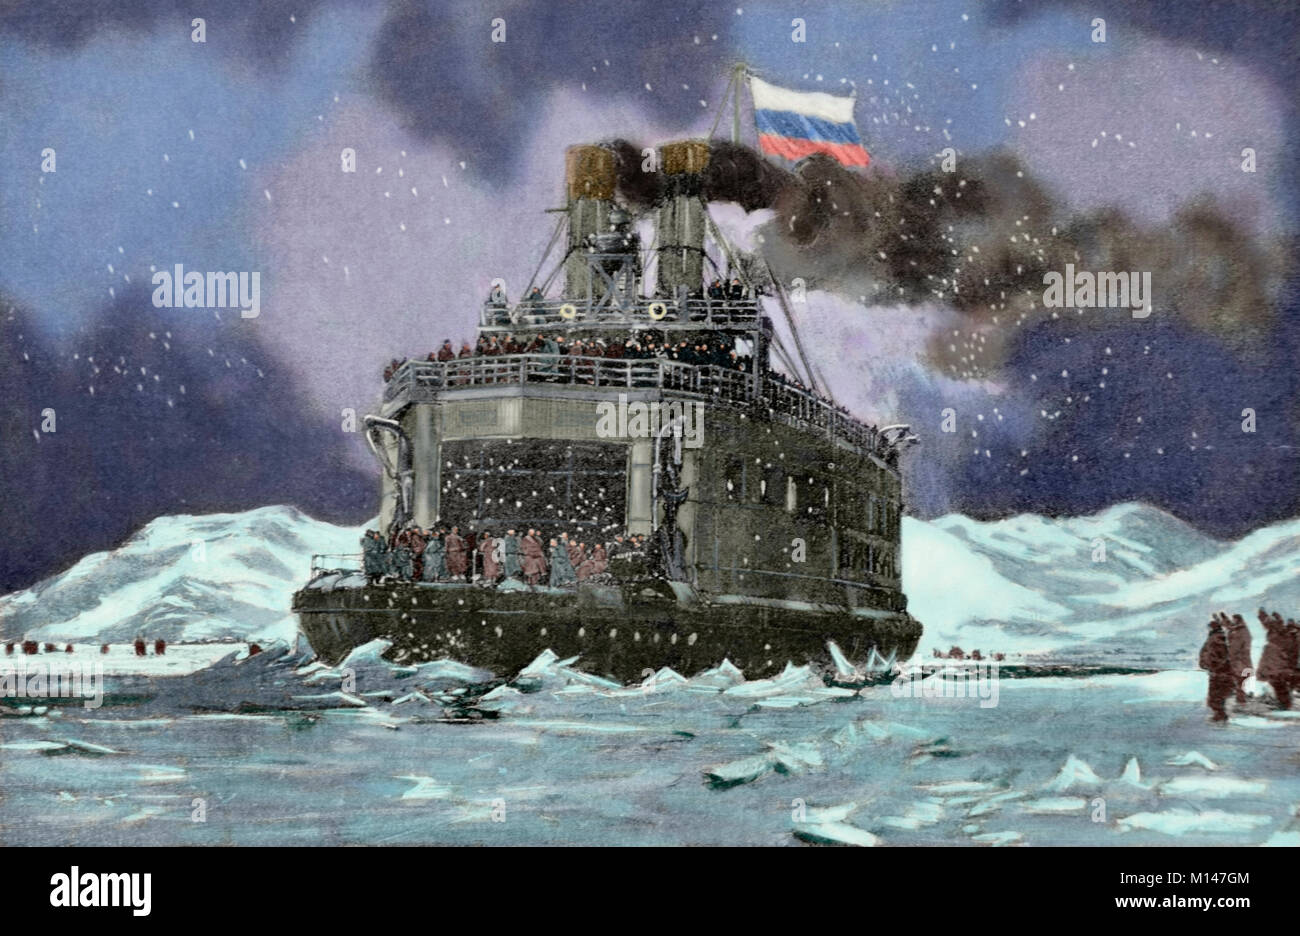 Russo-Japanese War (1904-1905). The icebreaker Baikal transports Russian troops across Lake Baikal. South of Siberia. - Stock Image